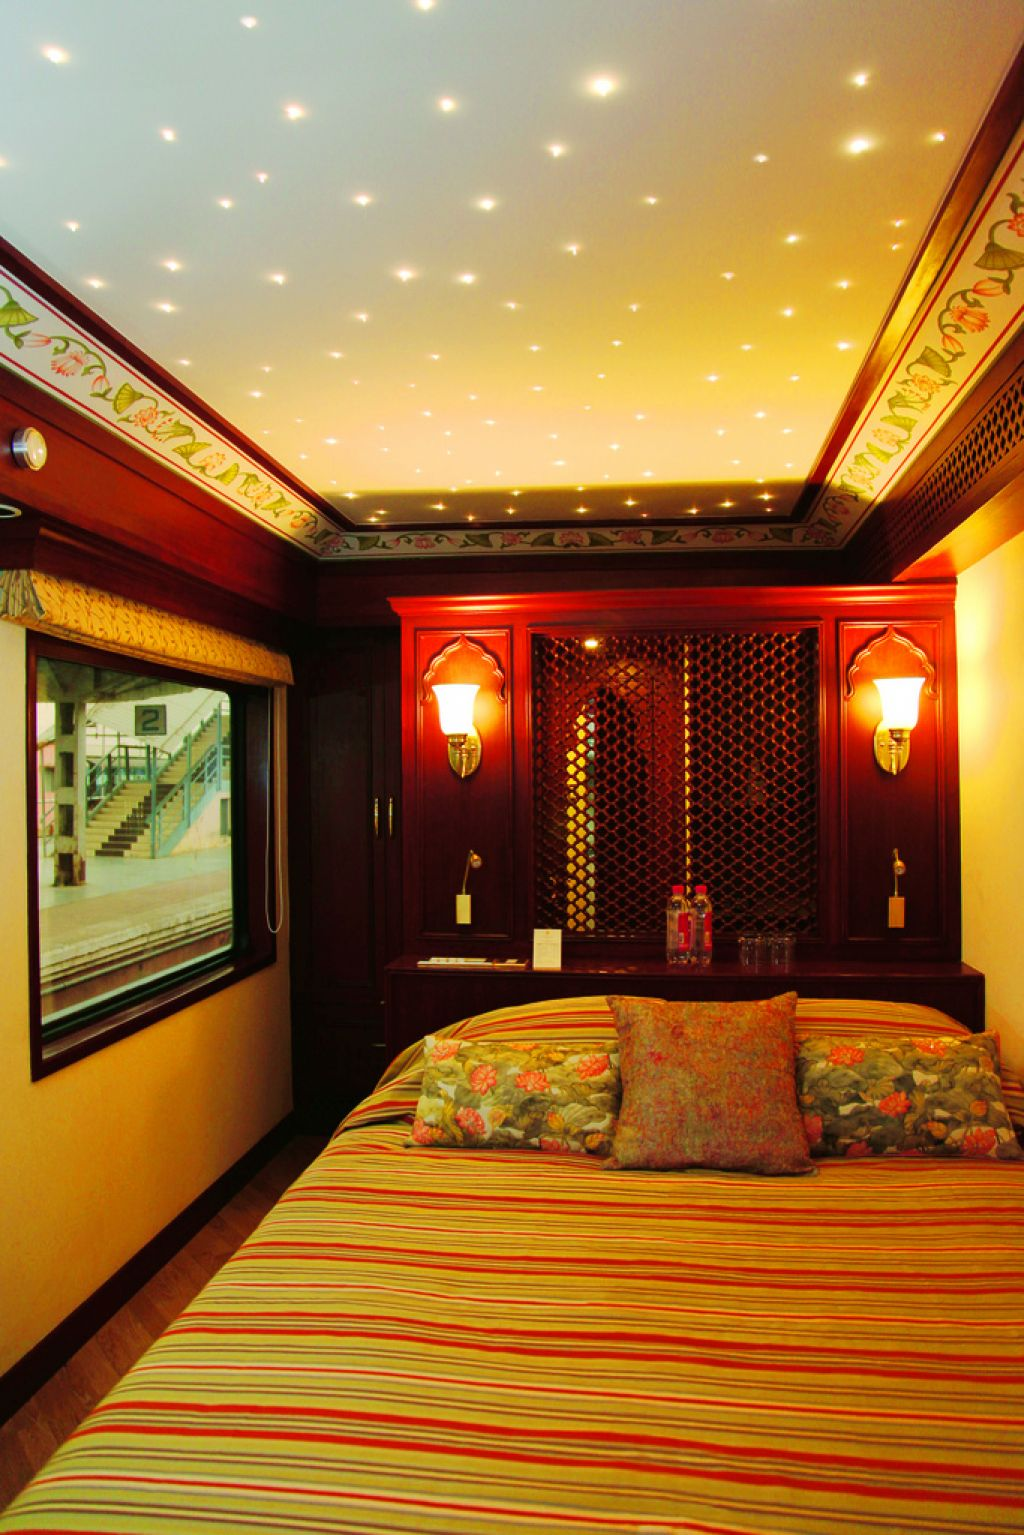 maharaja express10 Maharajas Express   One of the Most Luxurious Trains in World